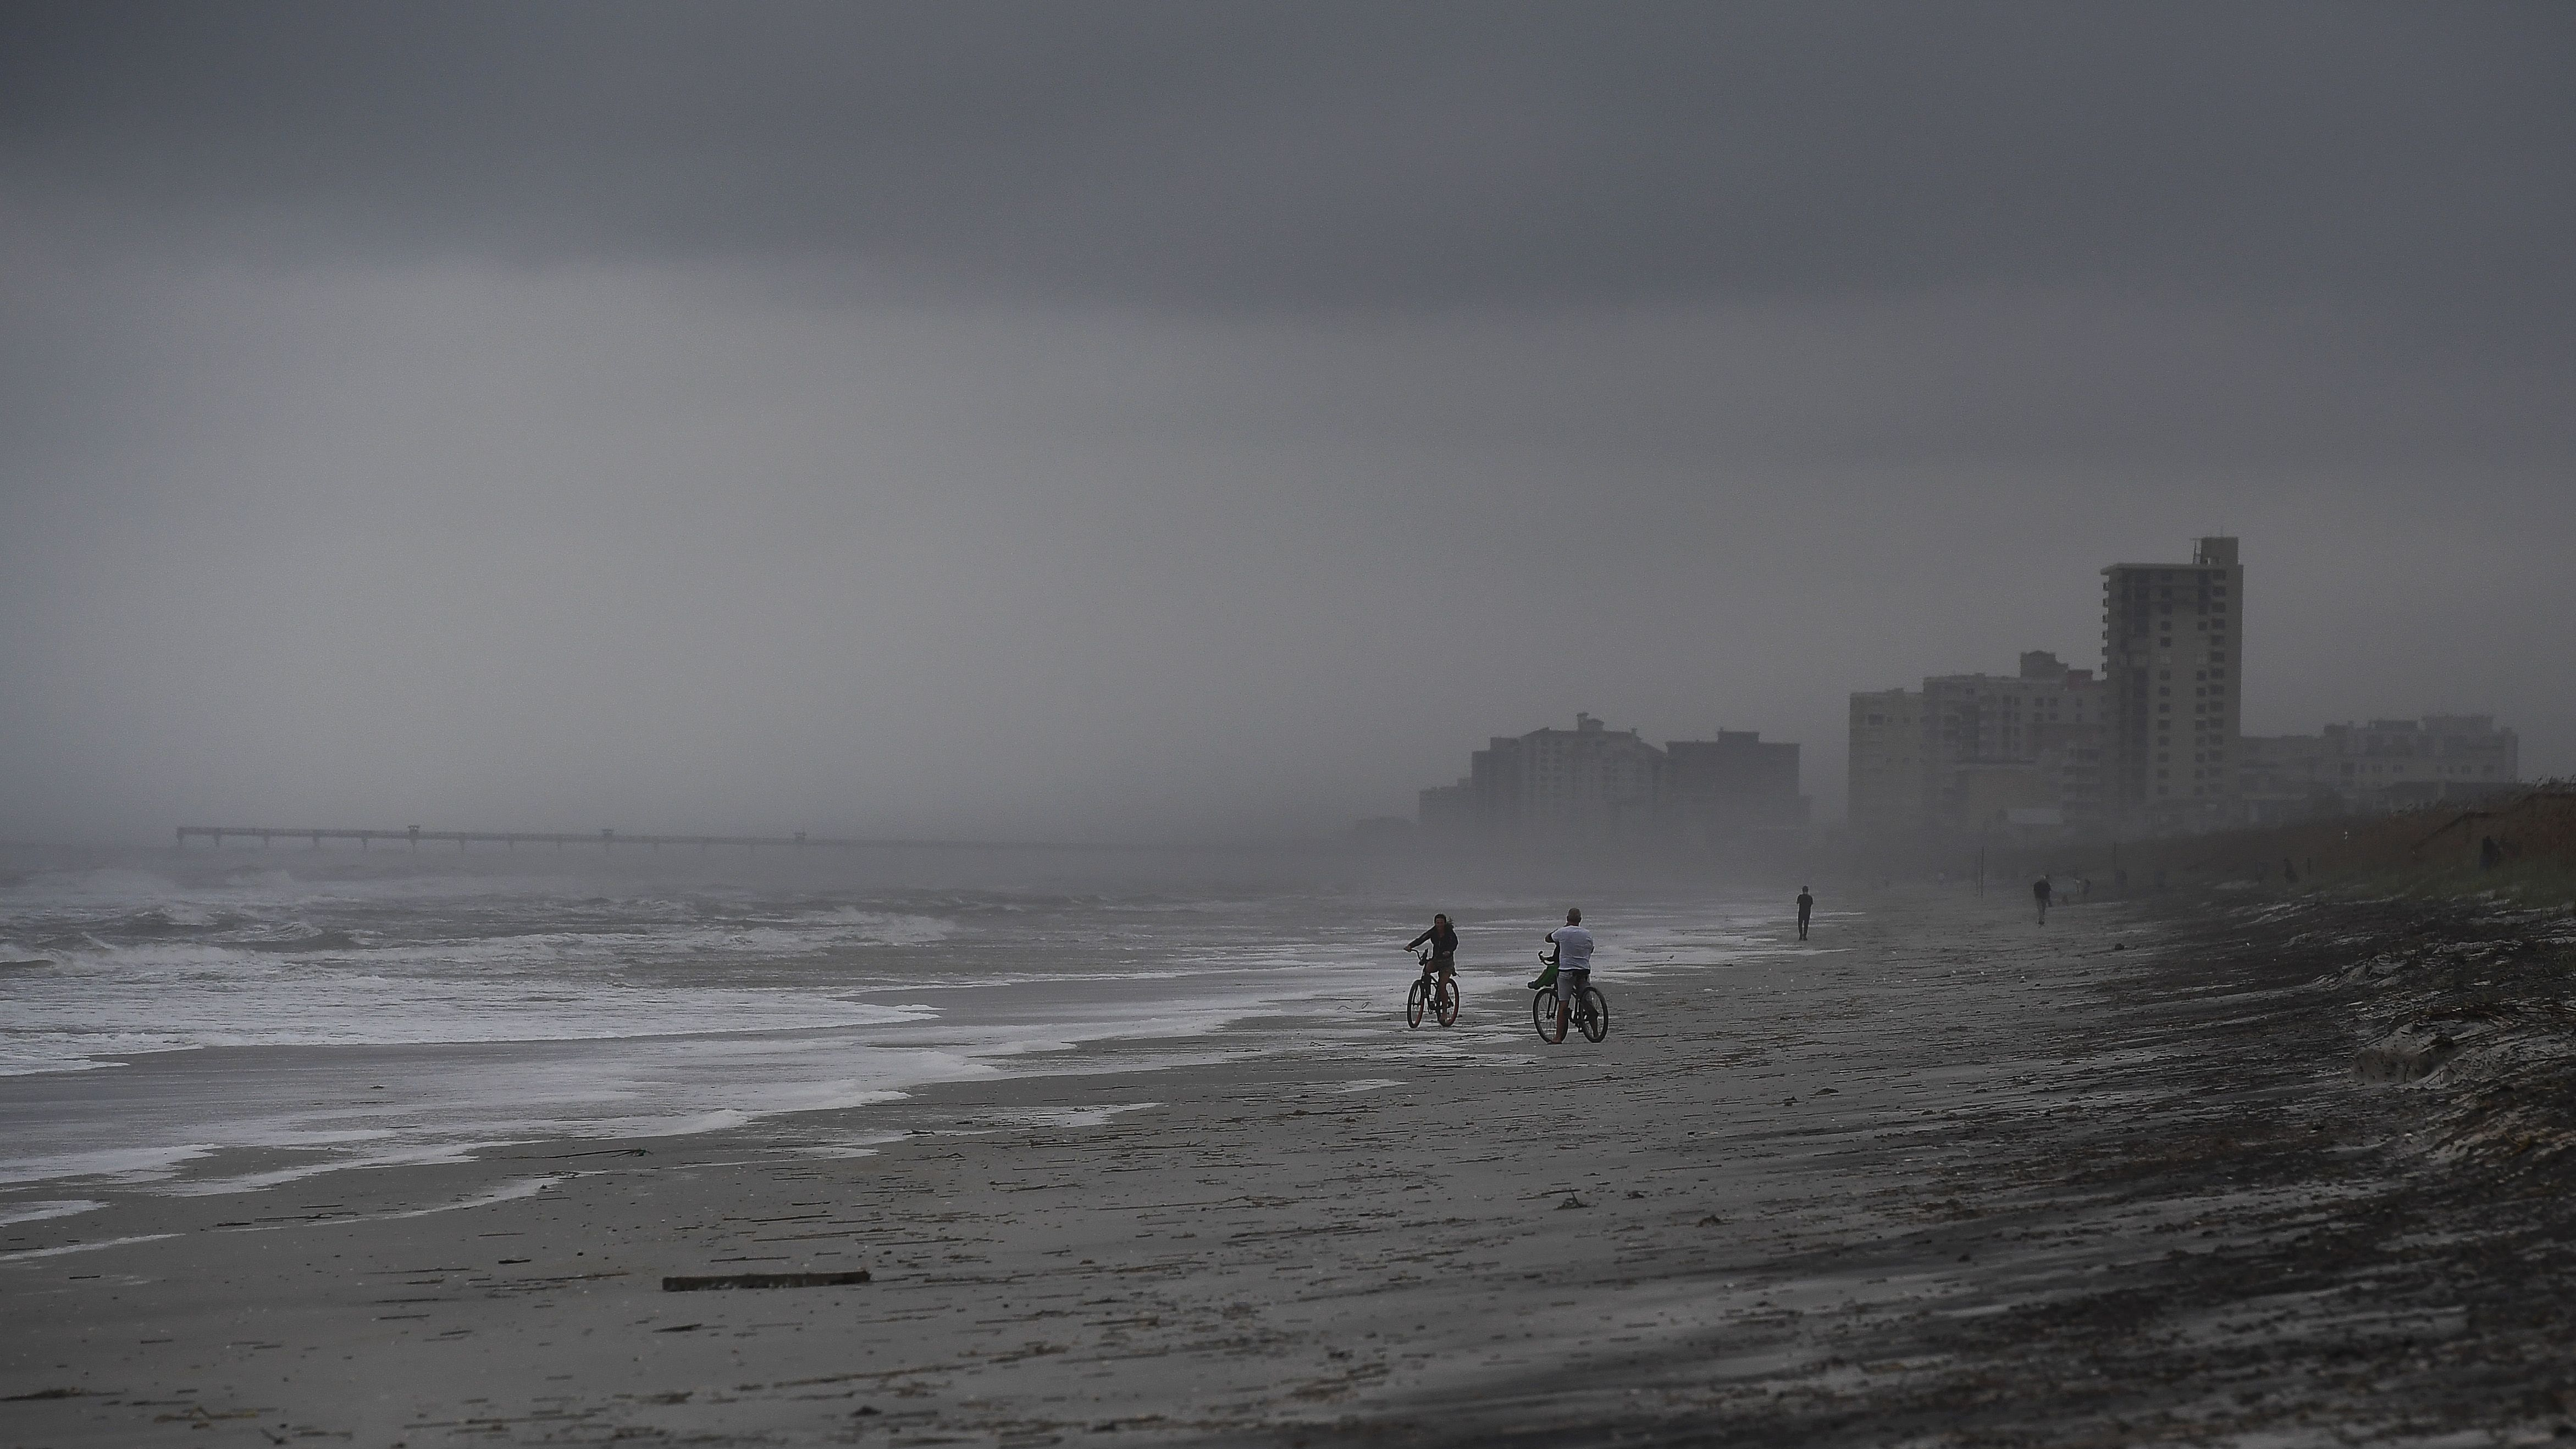 People bike on the beach ahead of Hurricane Matthew in Atlantic Beach, Fla., on Wednesday. Droves of people in the U.S. have begun evacuating coastal areas ahead of the storm, which tracked a deadly path through the Caribbean in a maelstrom of wind, mud and water. (Photo by Jewel Samad/AFP/Getty Images)